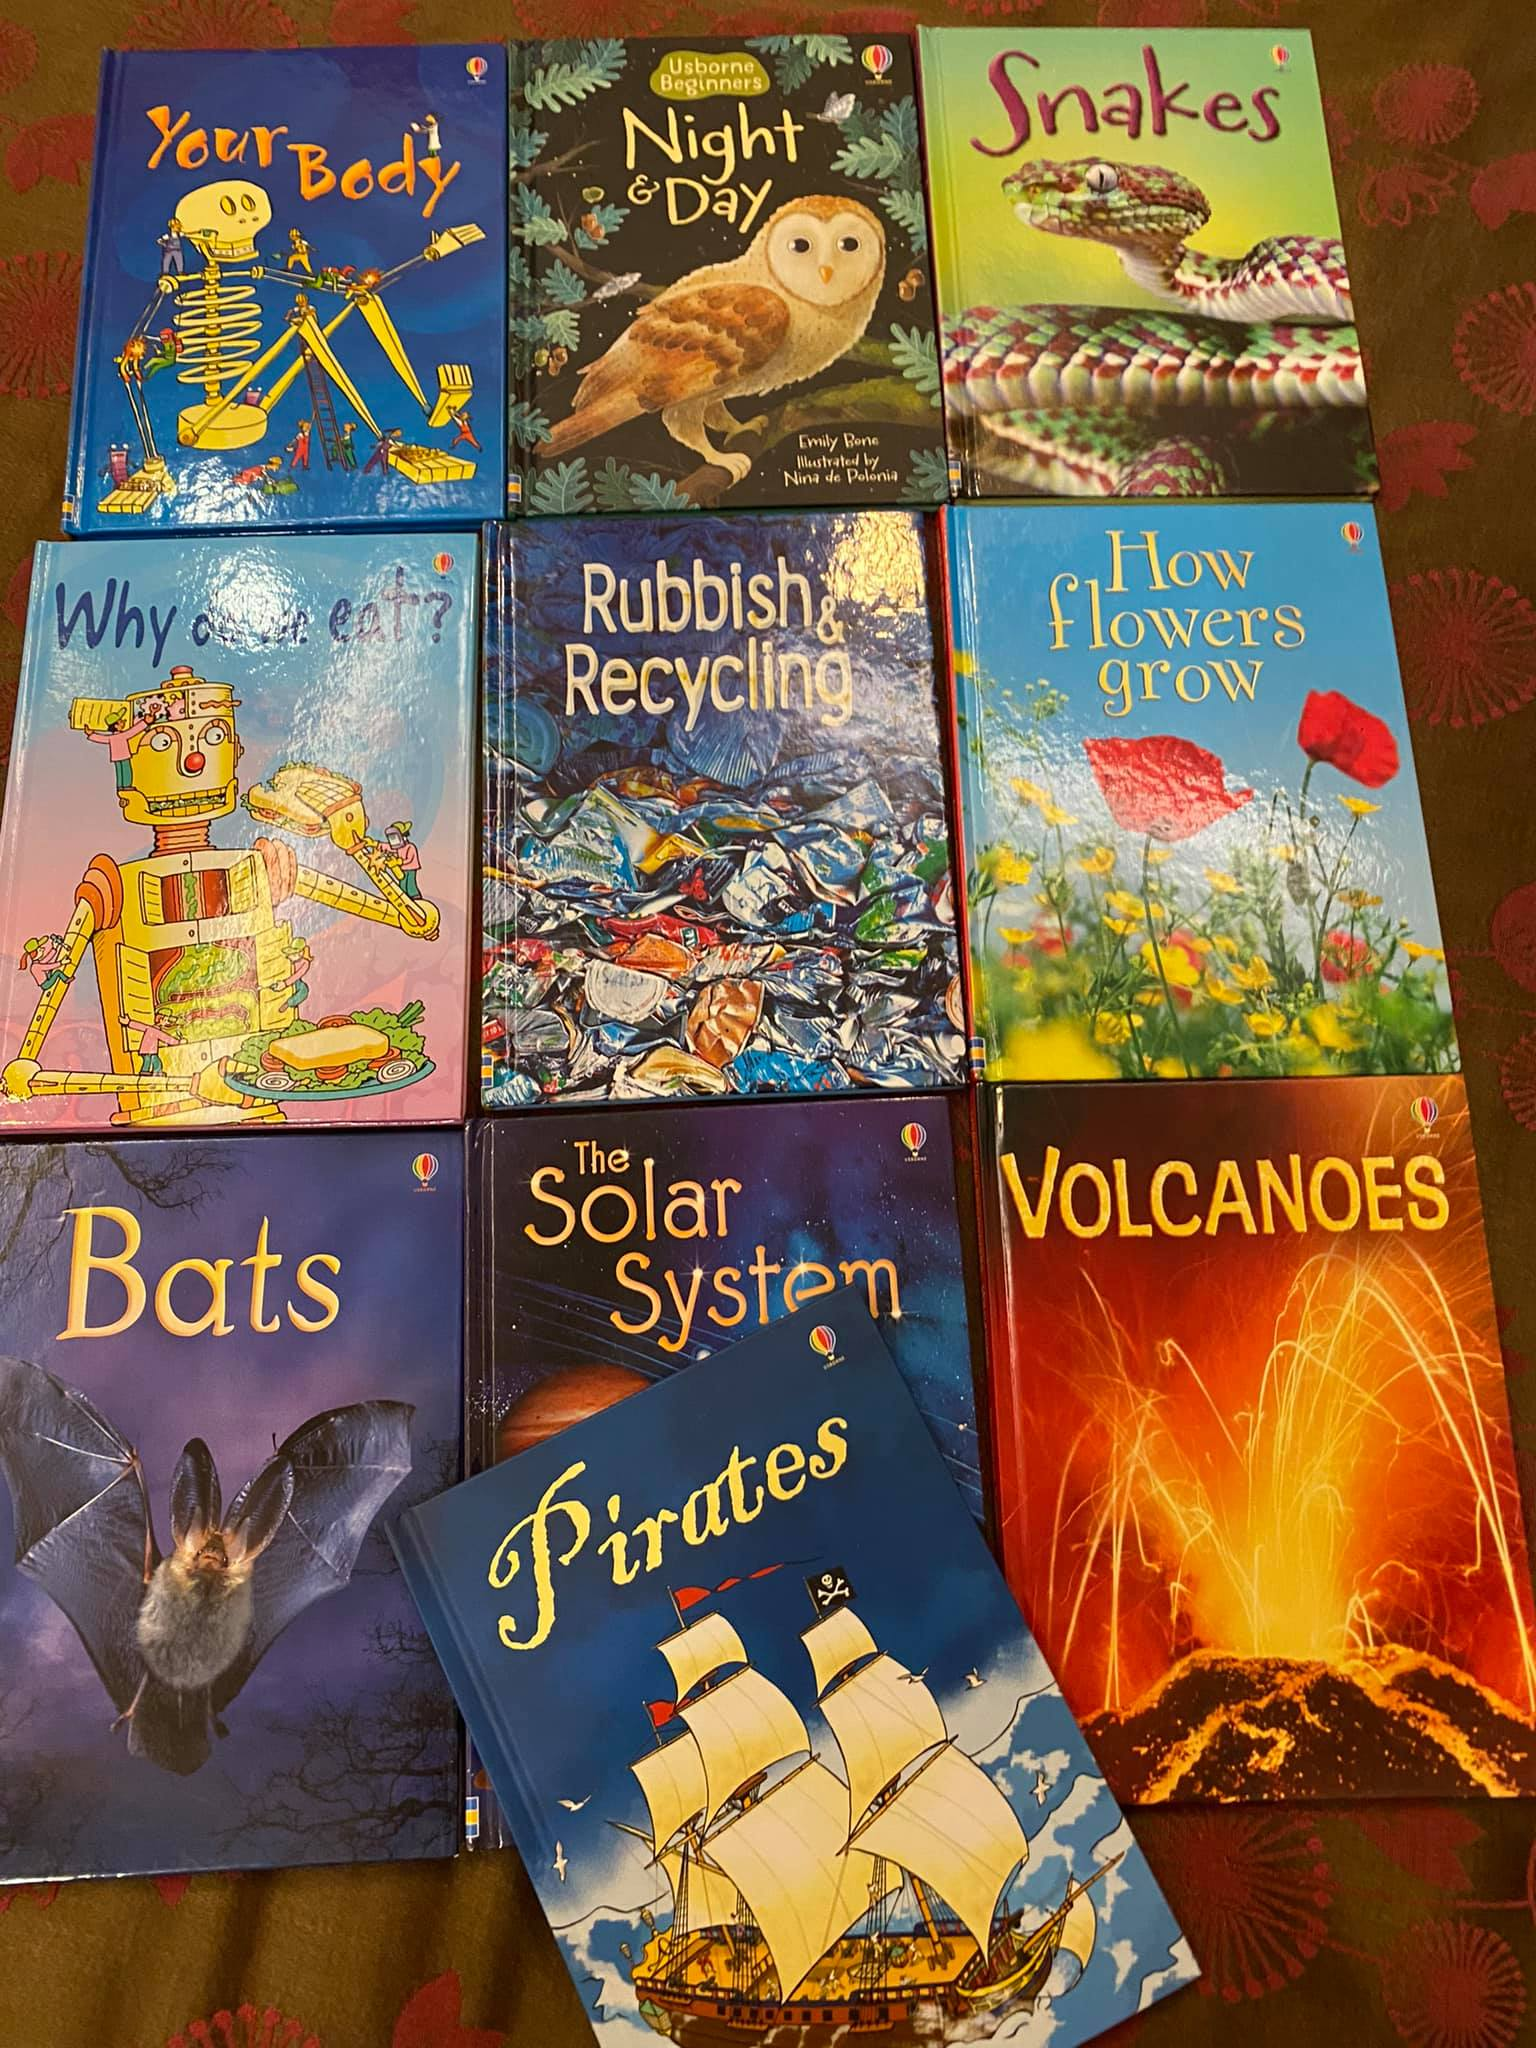 The Usborne Beginners Series: Why every child between 3.5-8 years should have some!